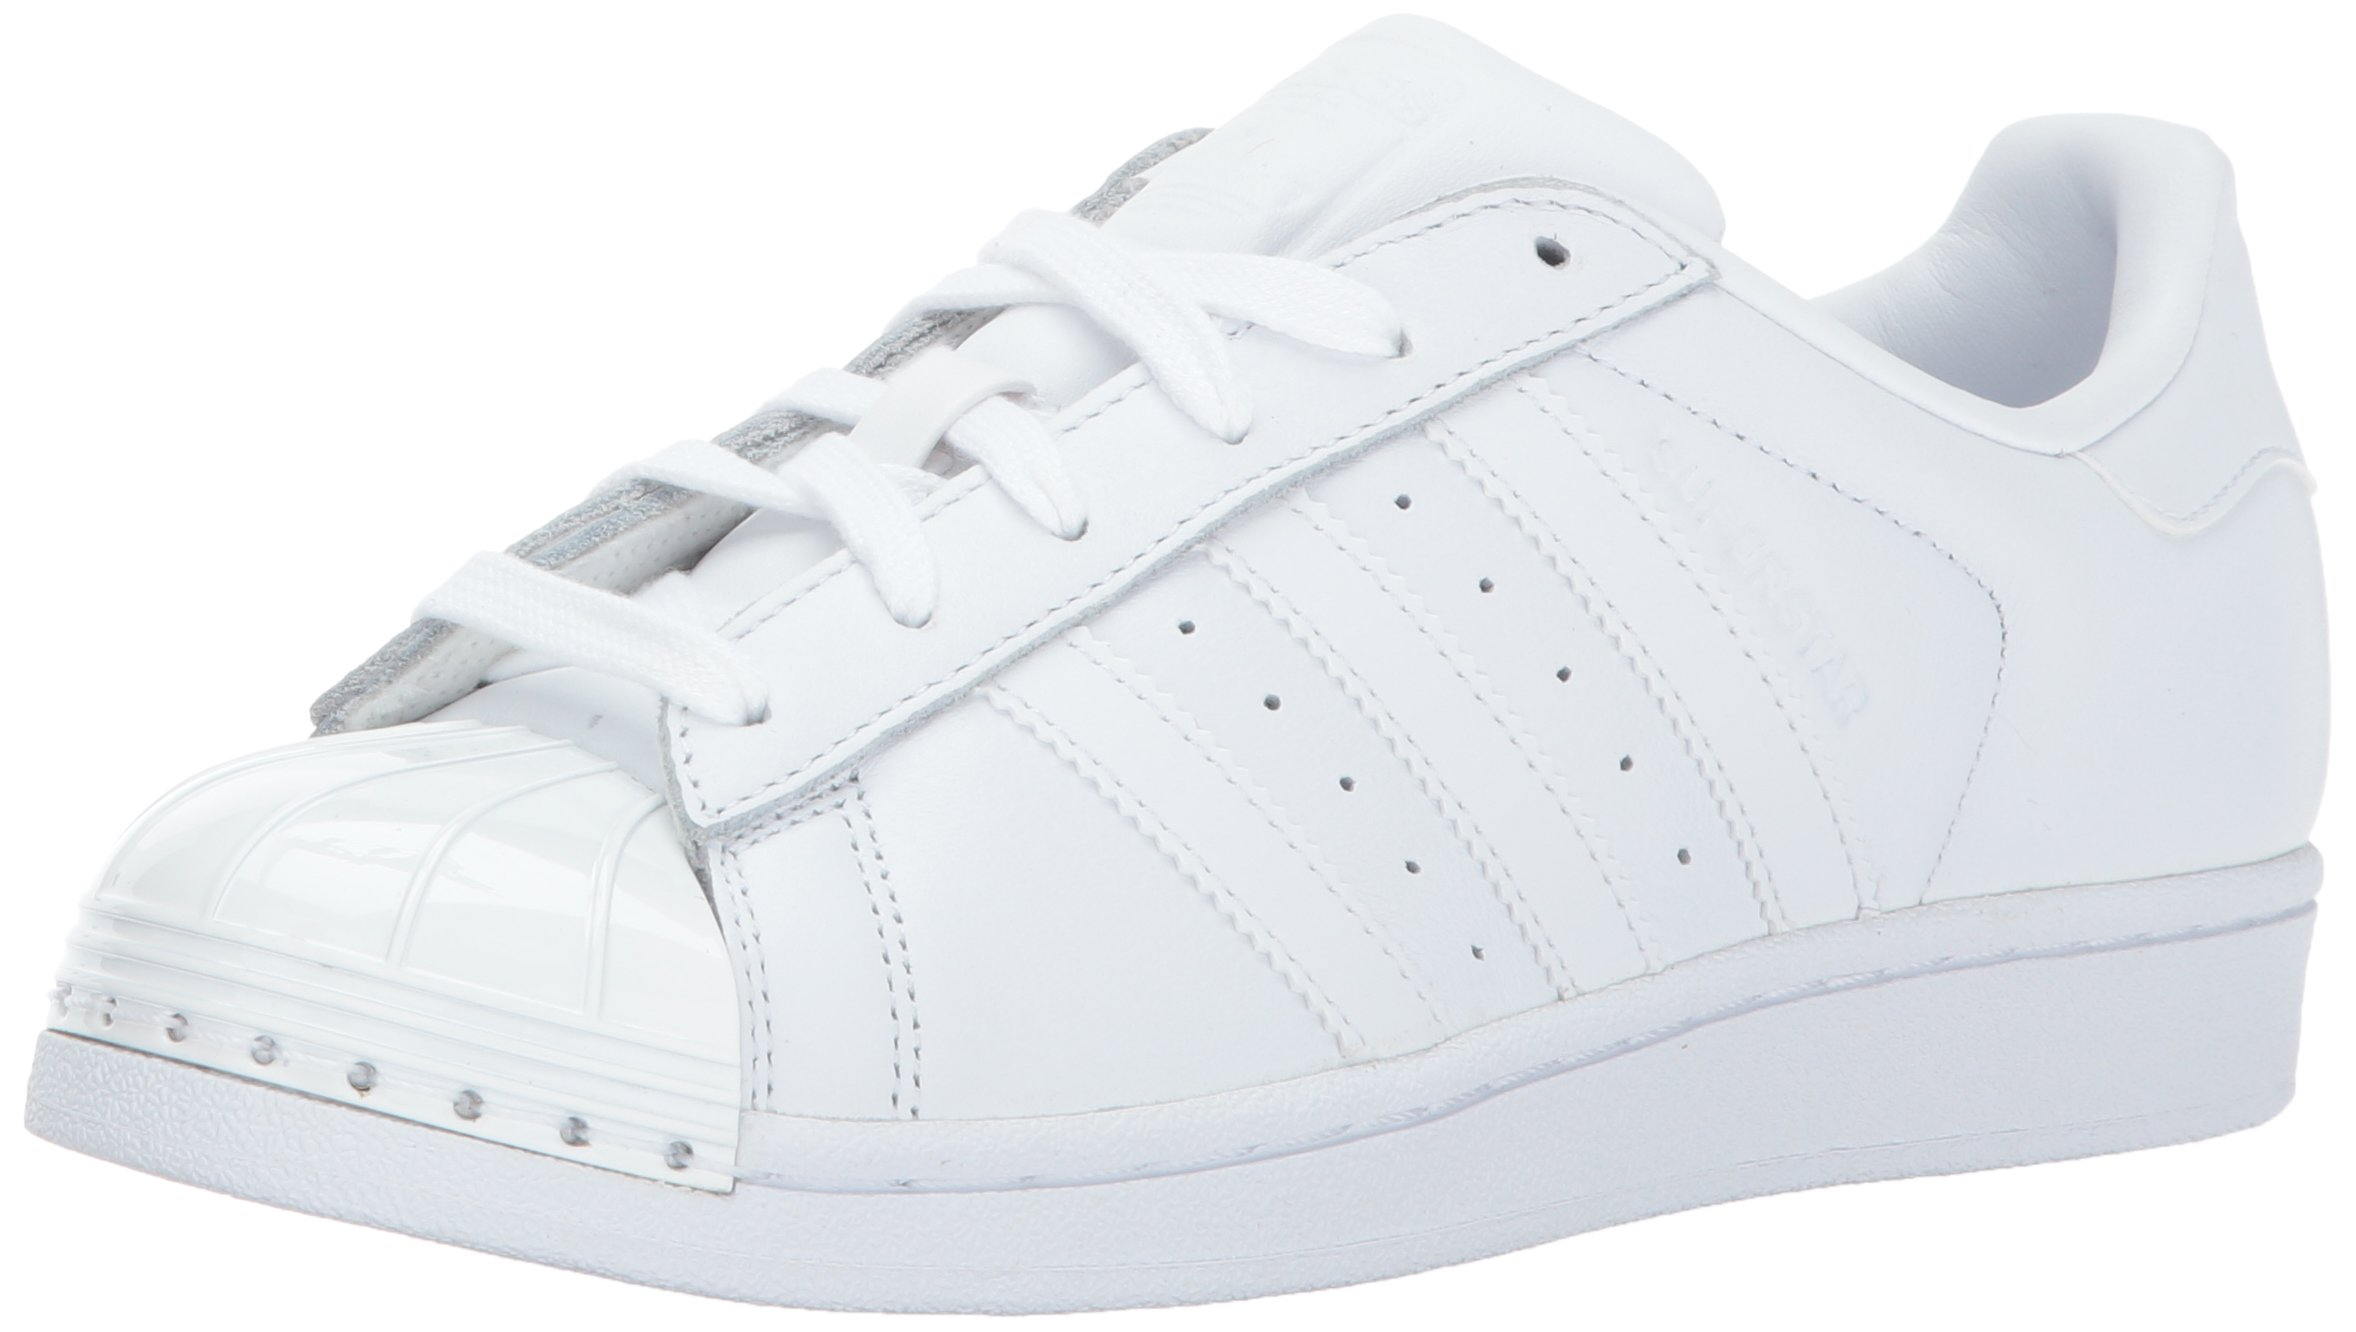 adidas Originals Women's Superstar Metal Toe W Skate Shoe, White/White/Black, 5 Medium US